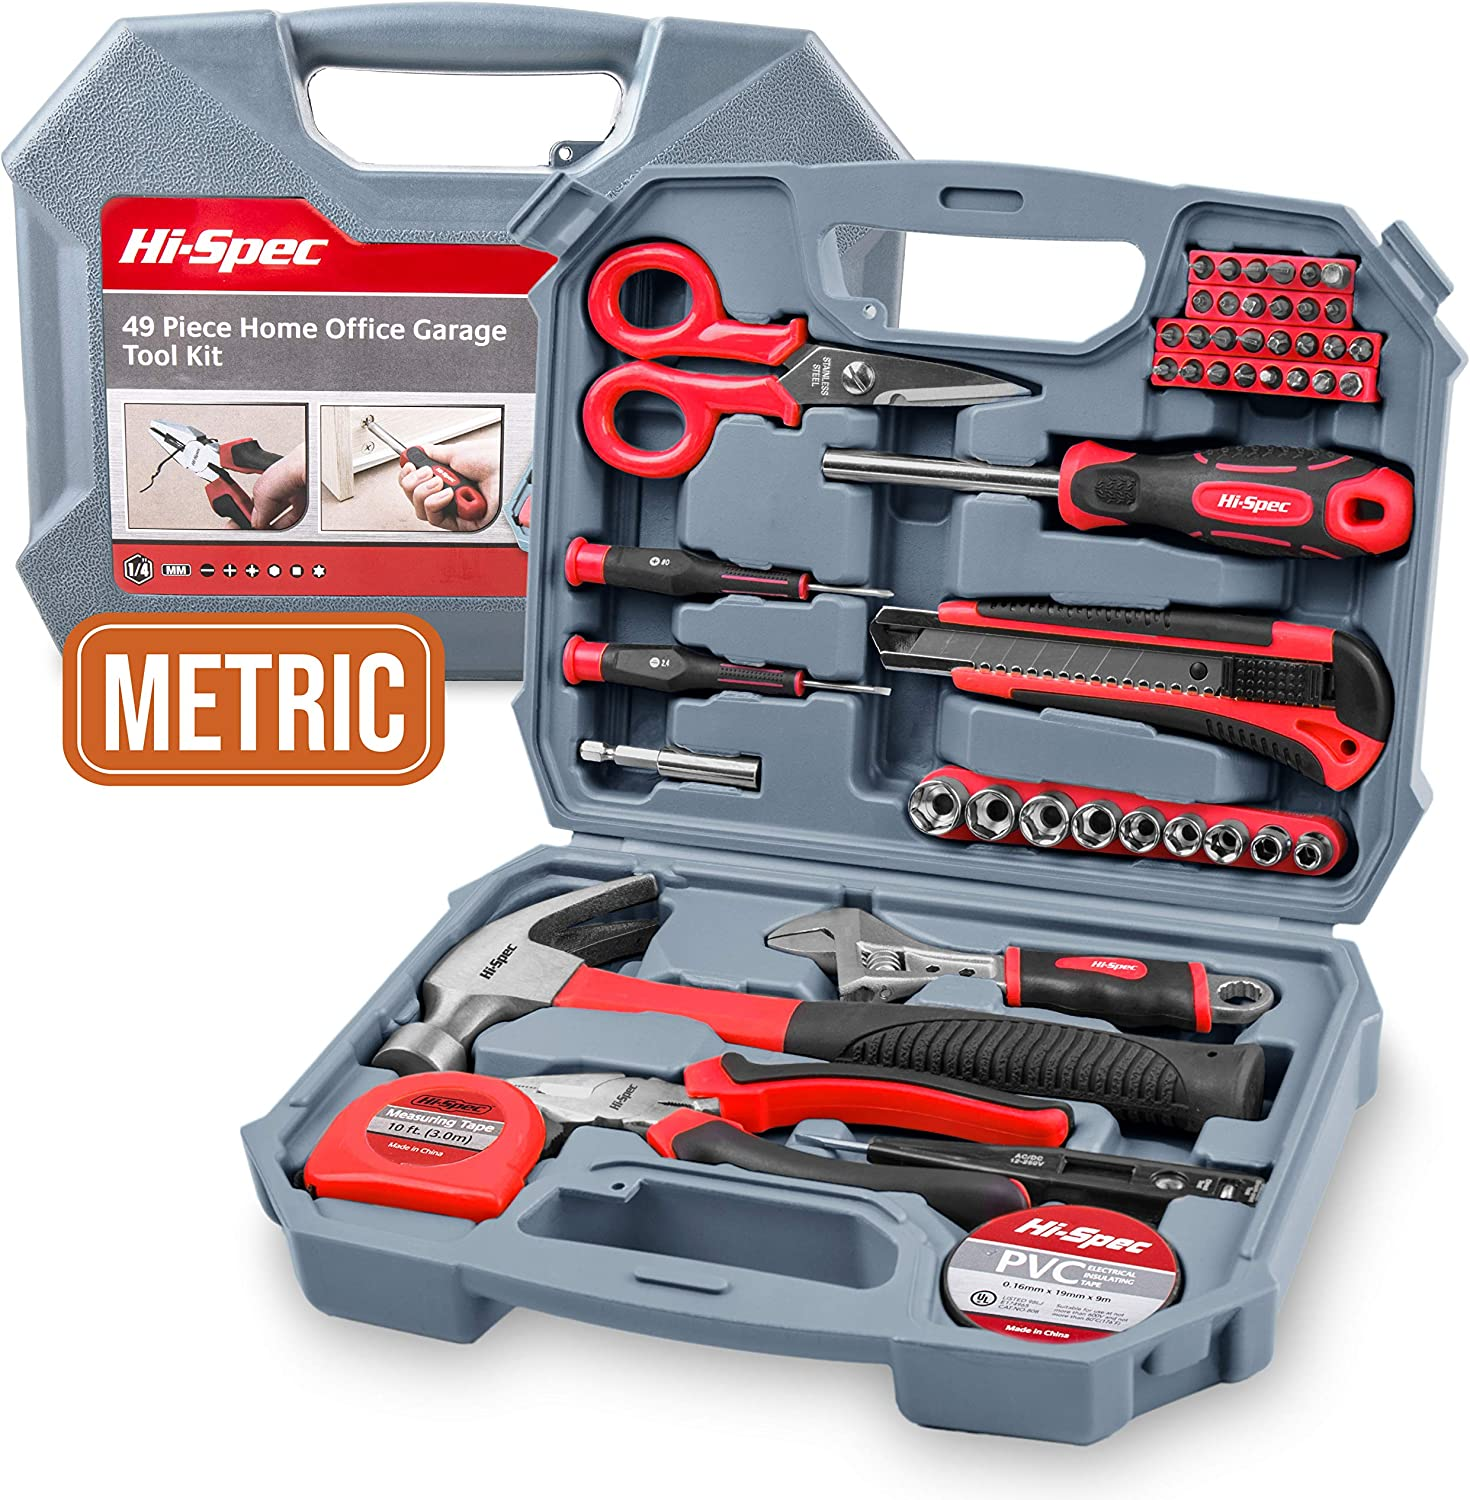 """Garage & Home Tool Kit, Hi-Spec DT30117, with Claw Hammer, Adjustable Wrench, Metric 1/4"""" Sockets, Precision Screwdrivers, Combination Pliers, Bit Driver & Screw Bits 49 Piece Set in Box"""